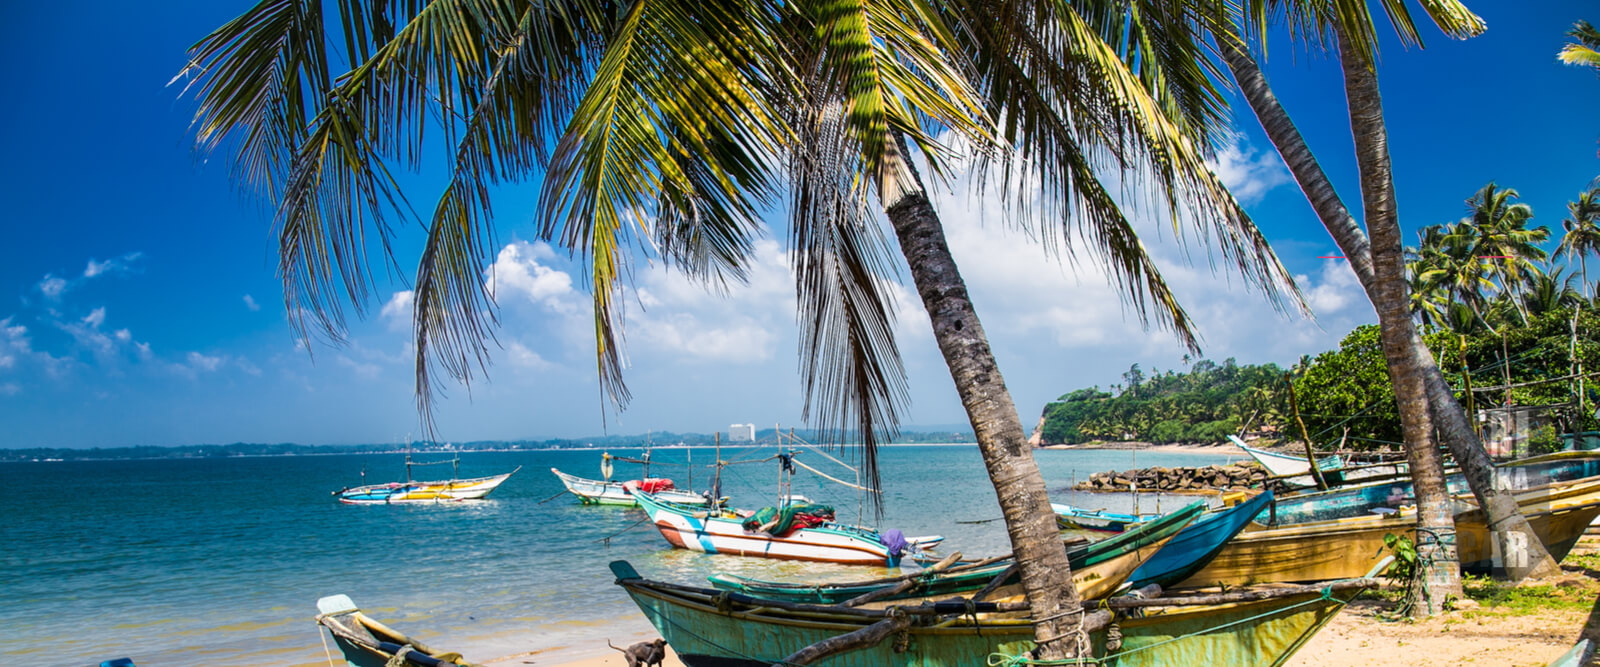 sri lanka beach holiday packages